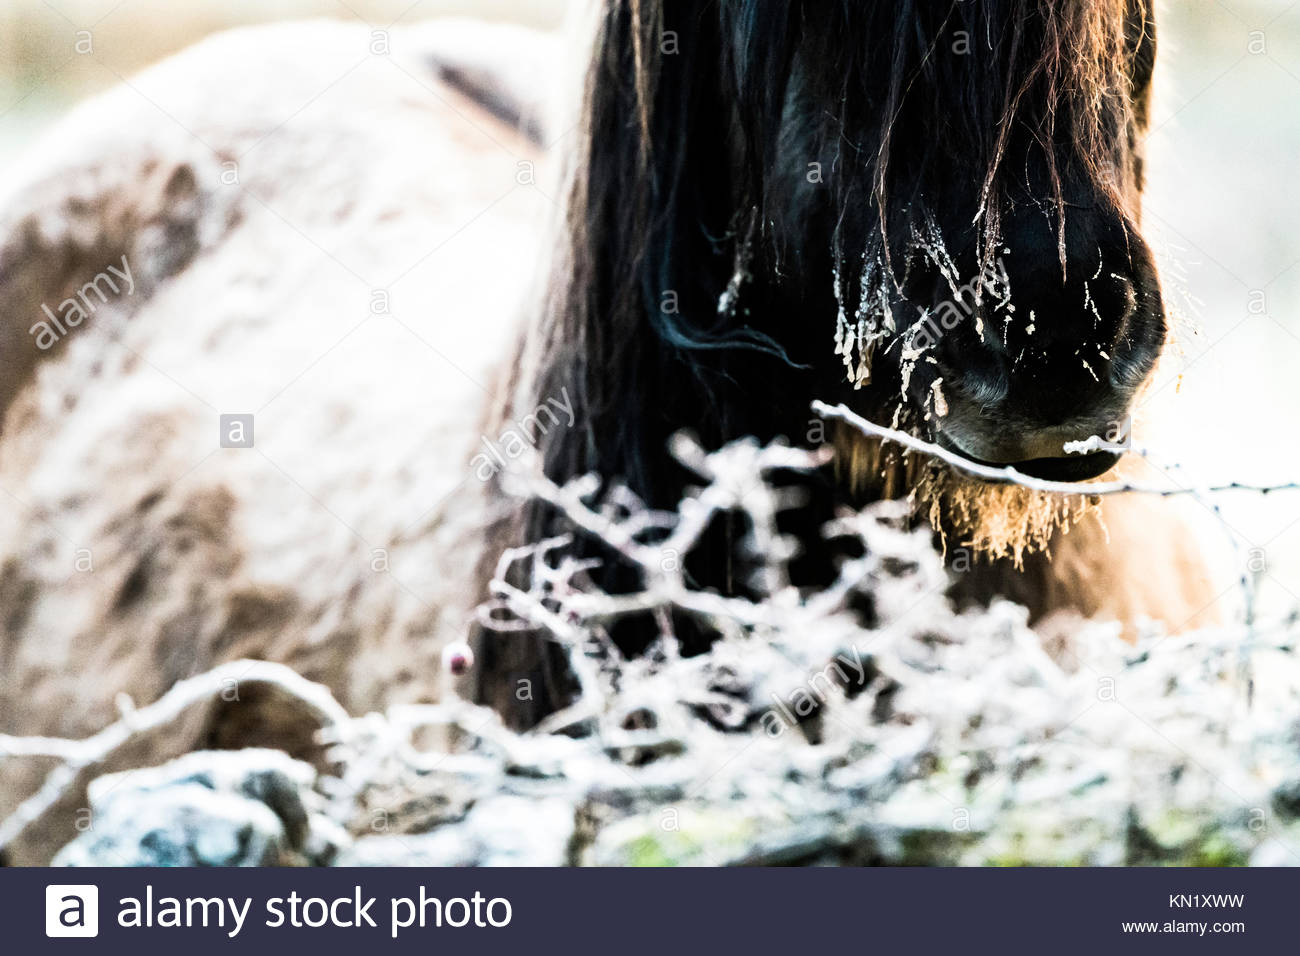 Cessford ferme, Morebattle Kelso, Scottish Borders, au Royaume-Uni. 10 décembre 2017. Poneys des Highlands Photo Stock